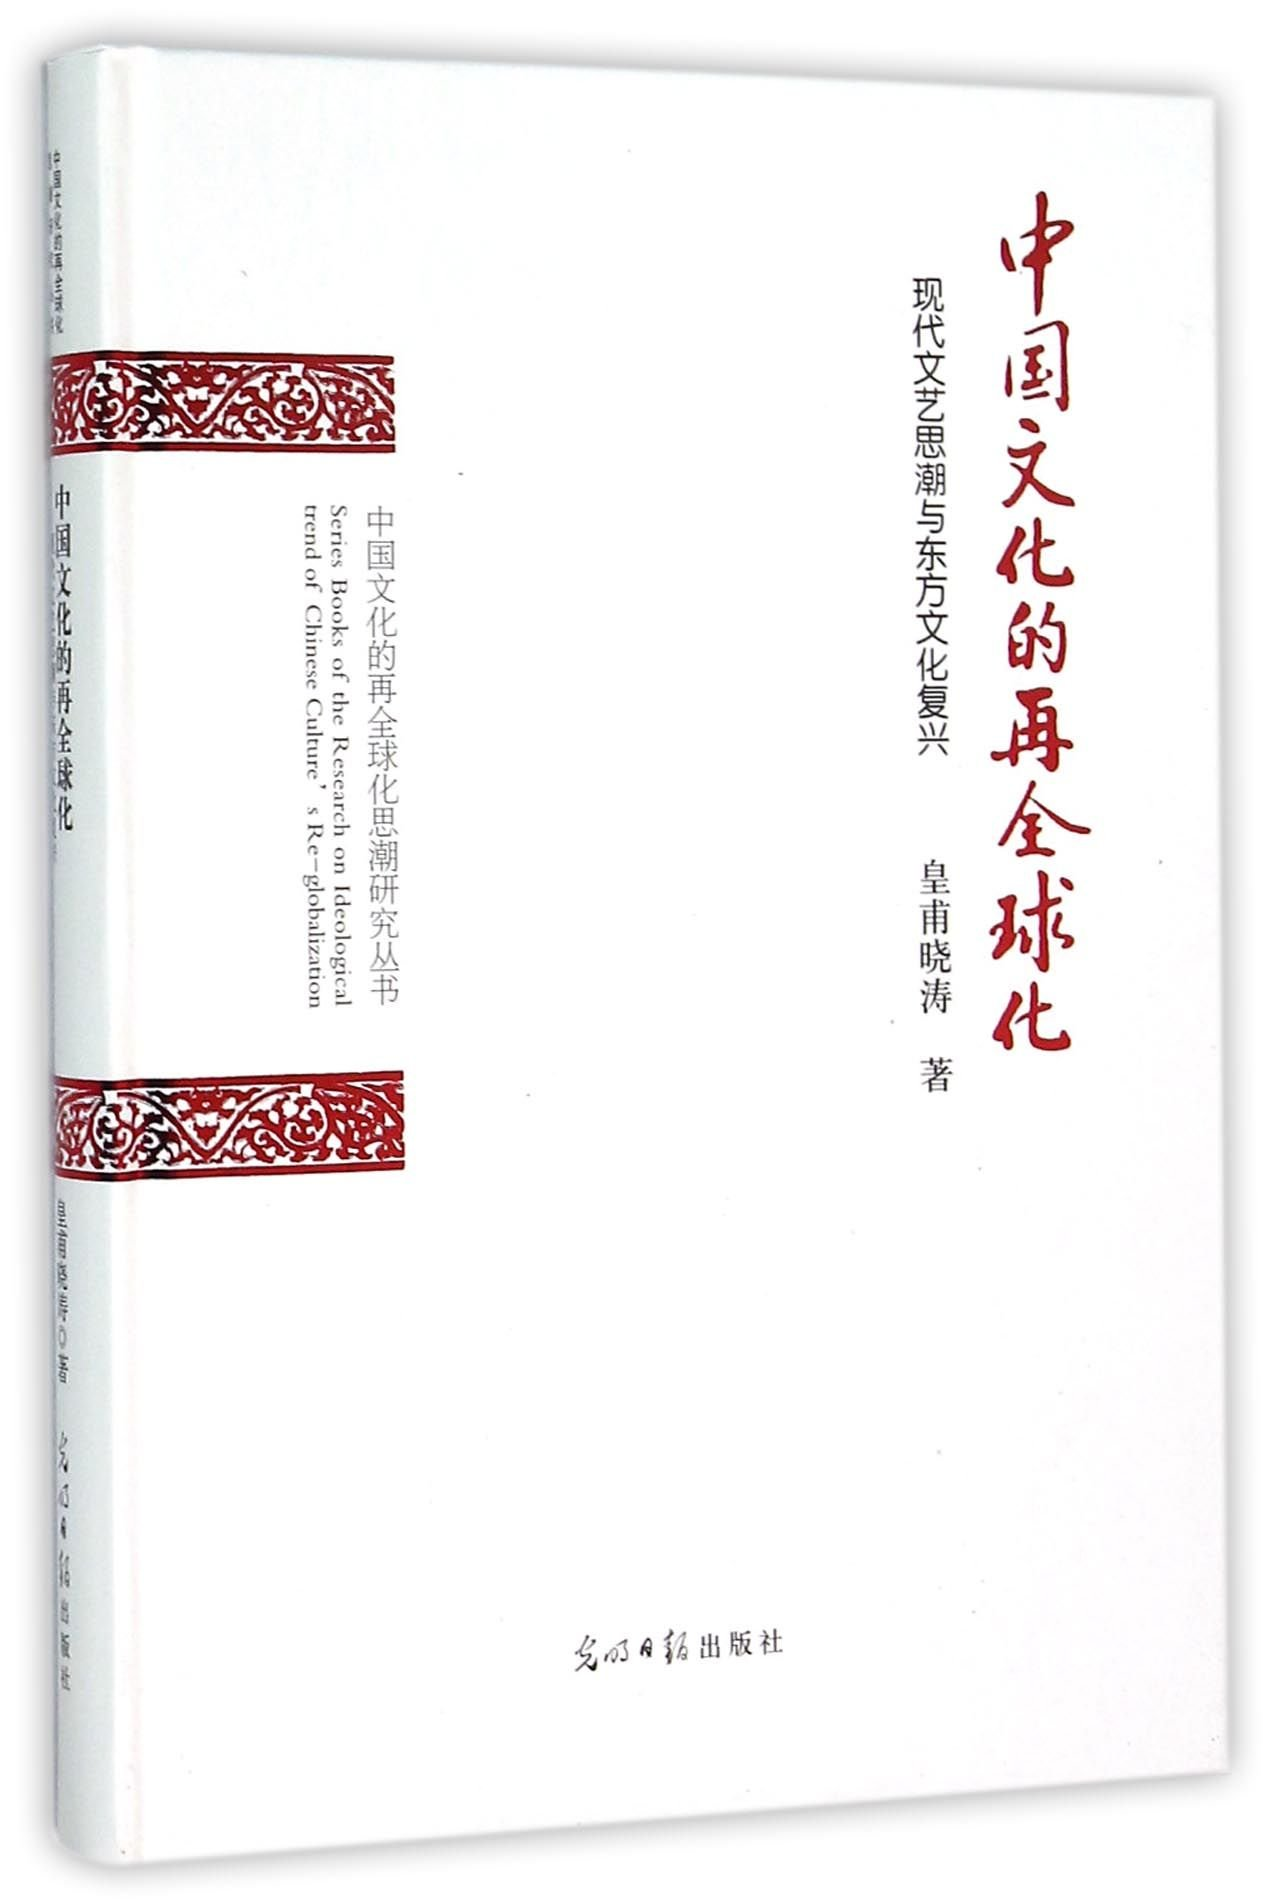 Download Series Books of the Research on Ideological trend of Chinese Culture's Re-globalization (Chinese Edition) ebook